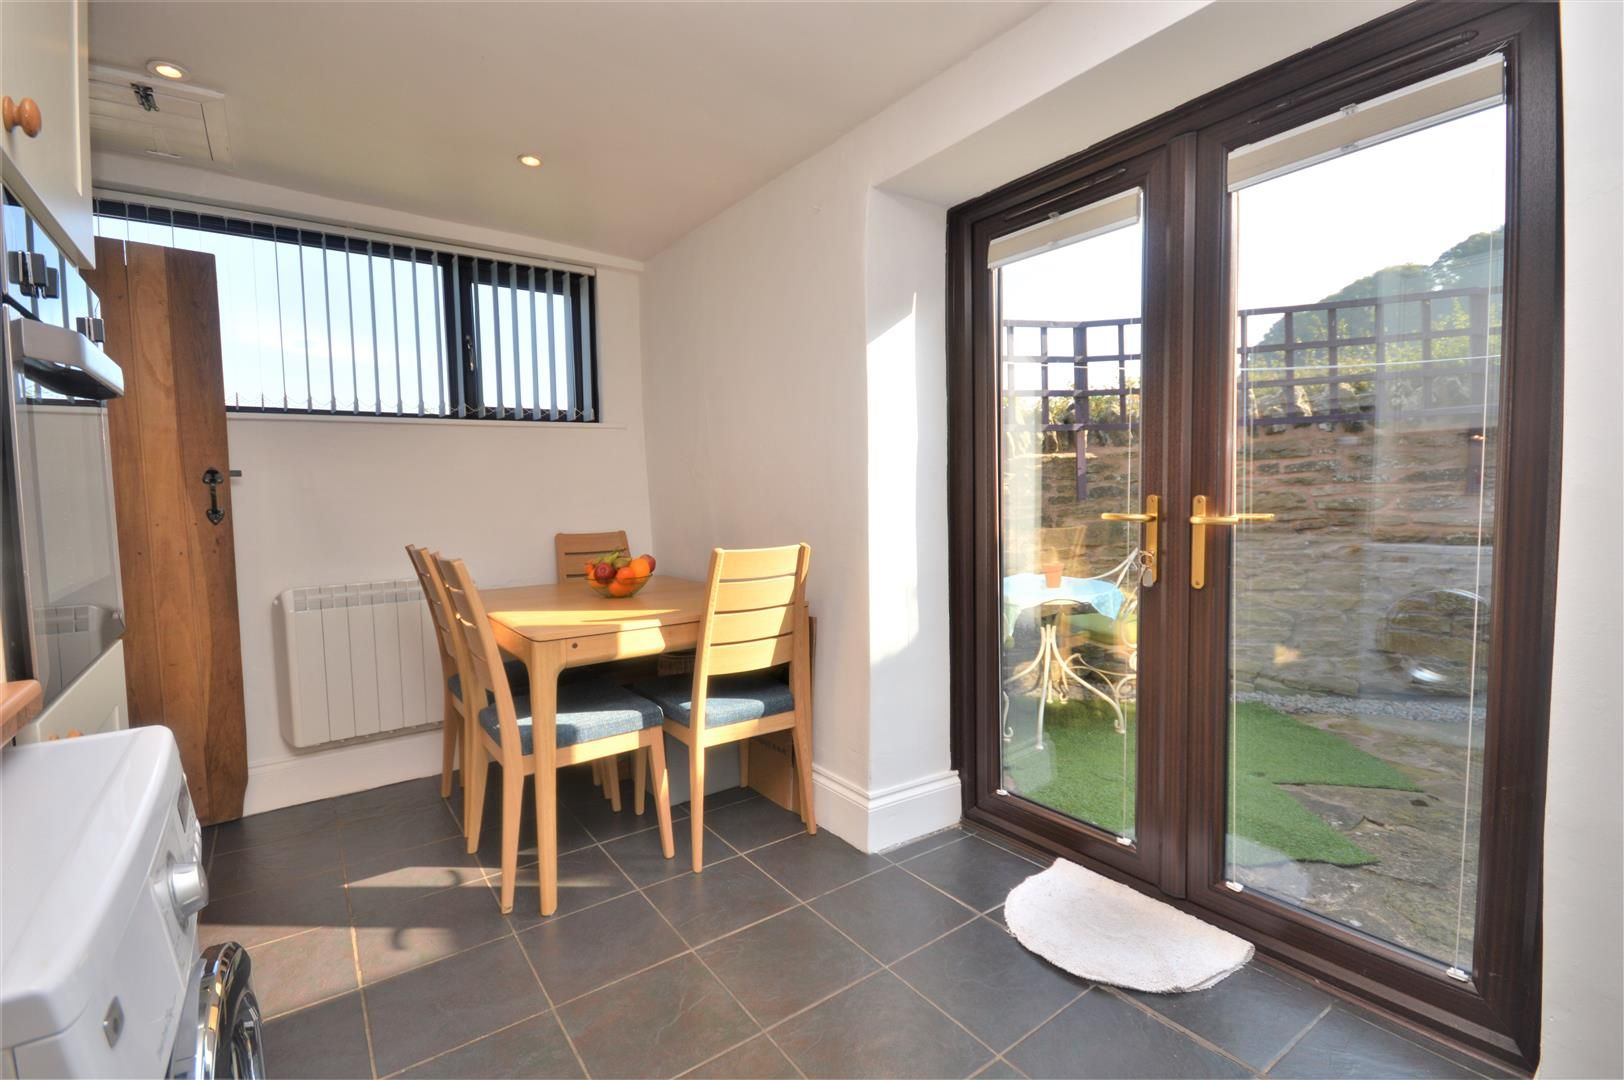 1 bed end-of-terrace for sale in Callow 5